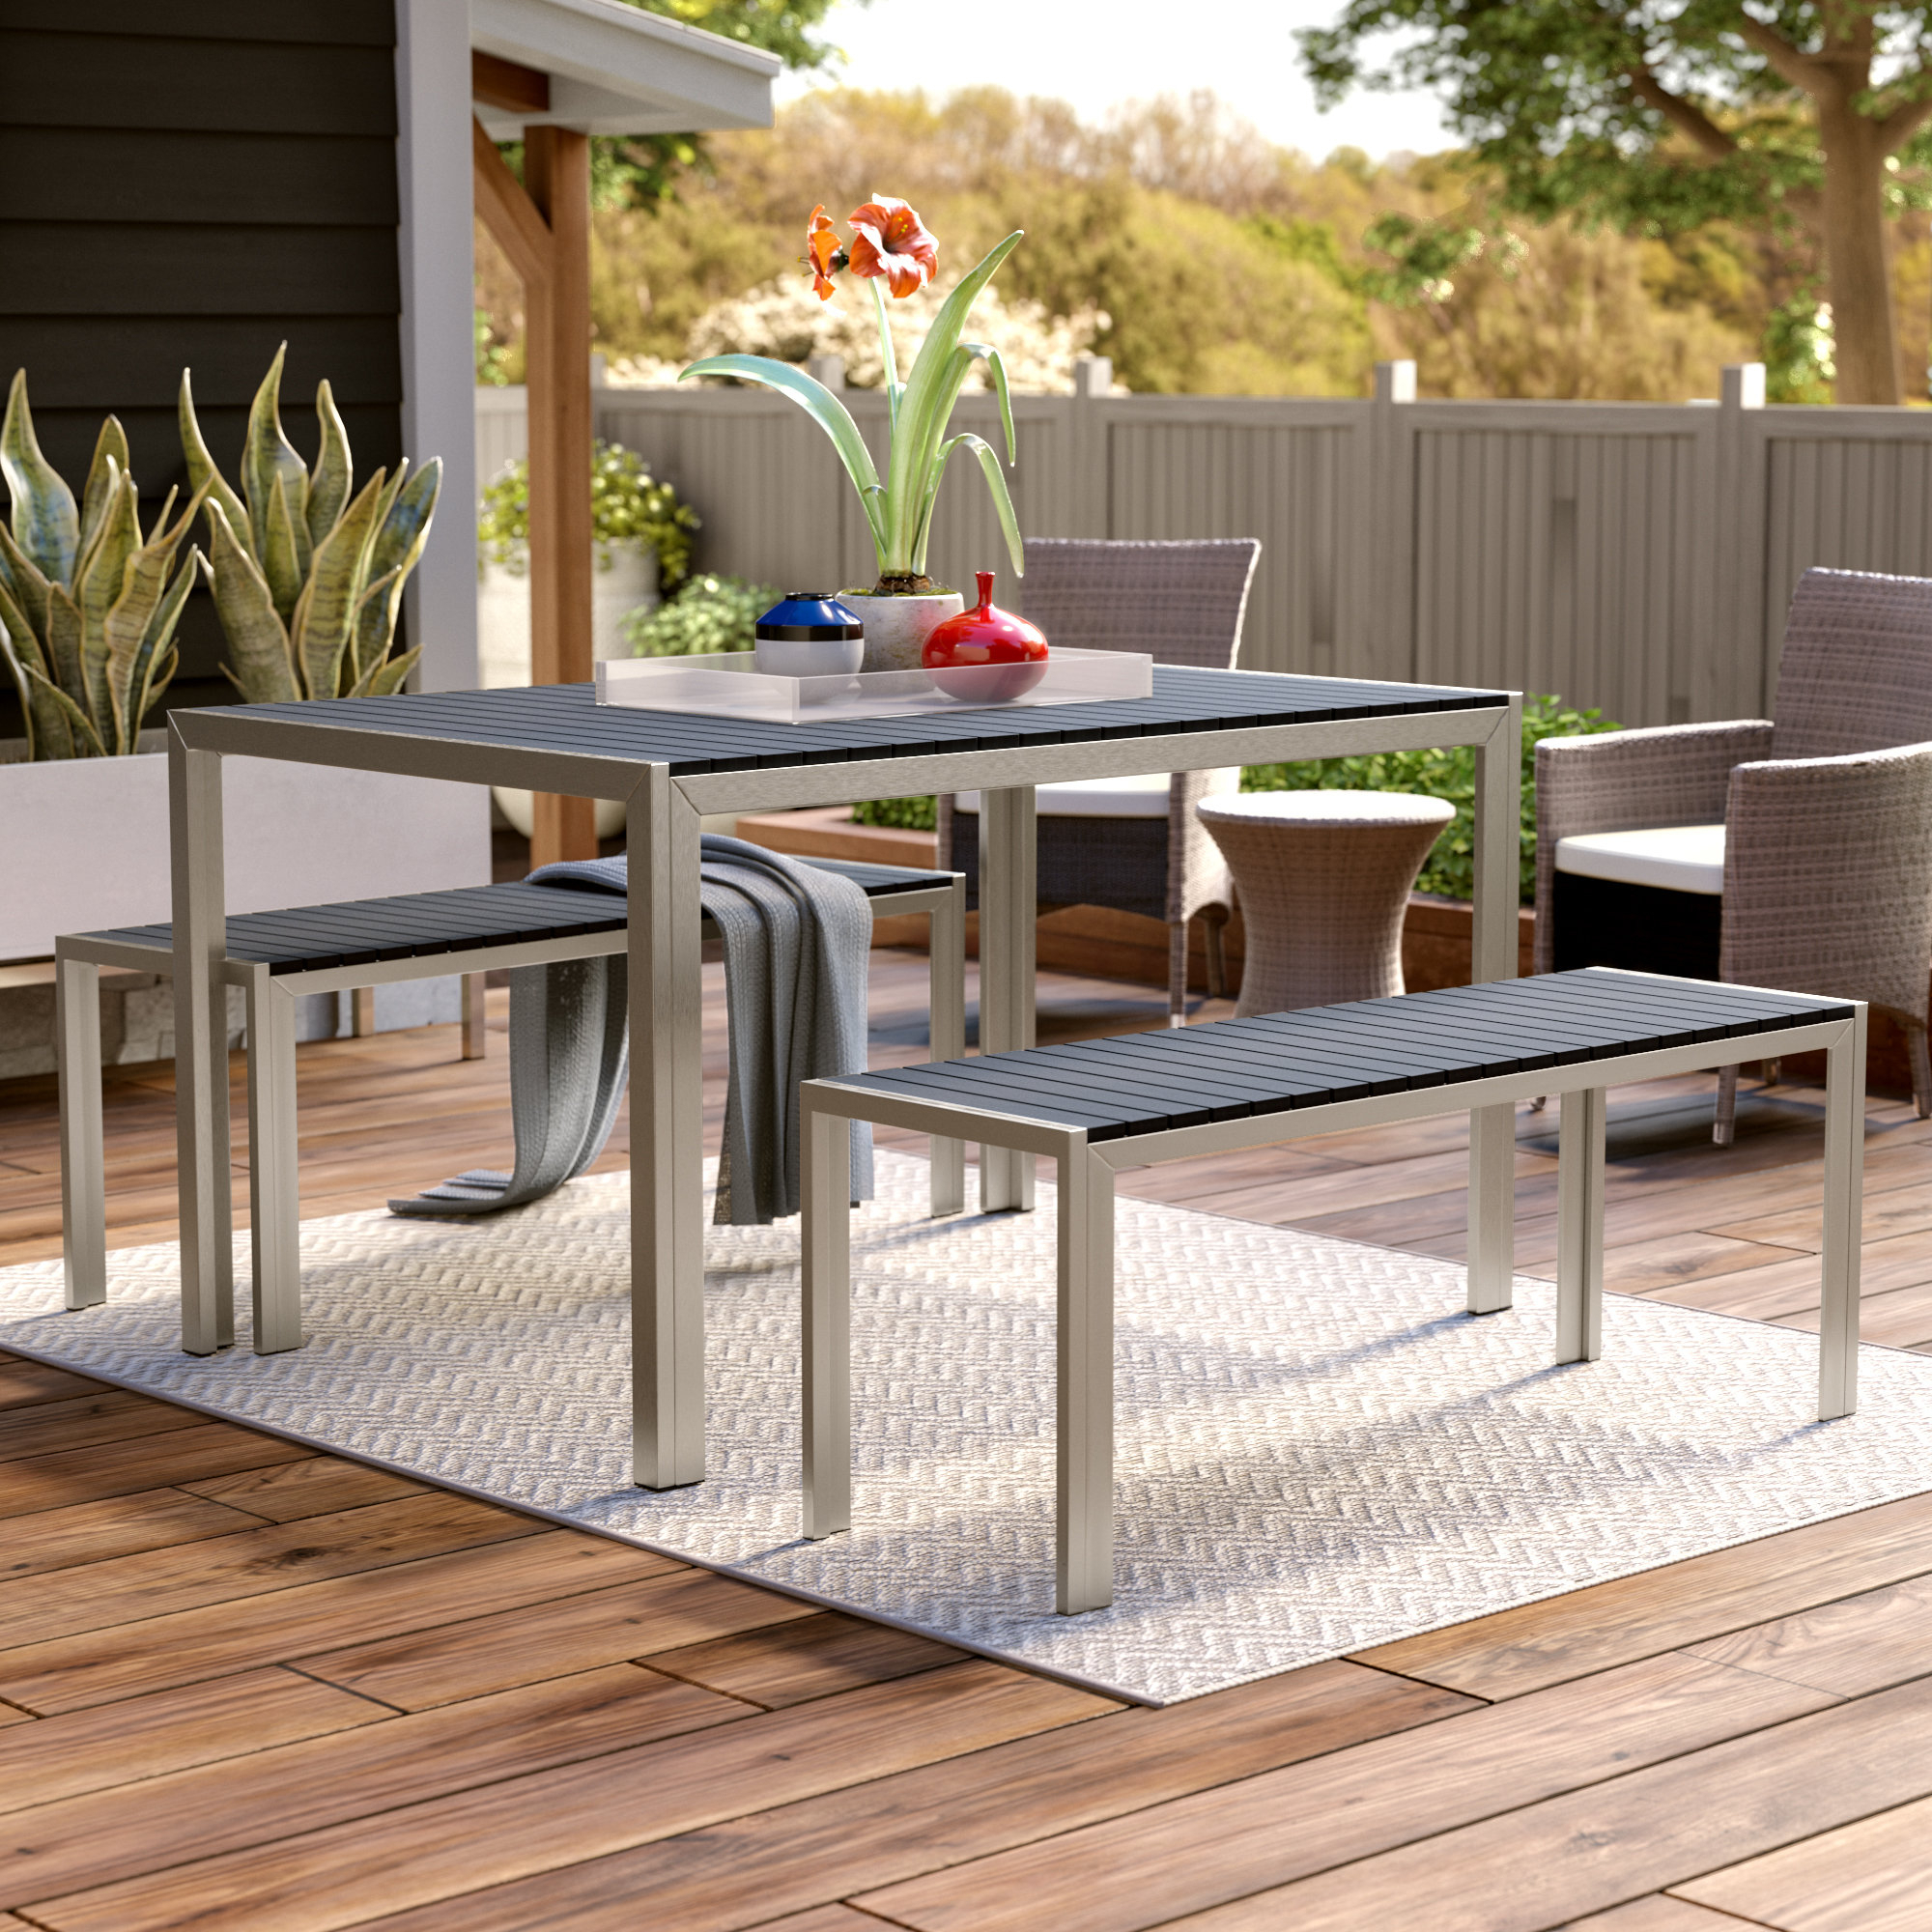 Serpa 3 Piece Dining Set Throughout Best And Newest 3 Piece Dining Sets (View 20 of 20)